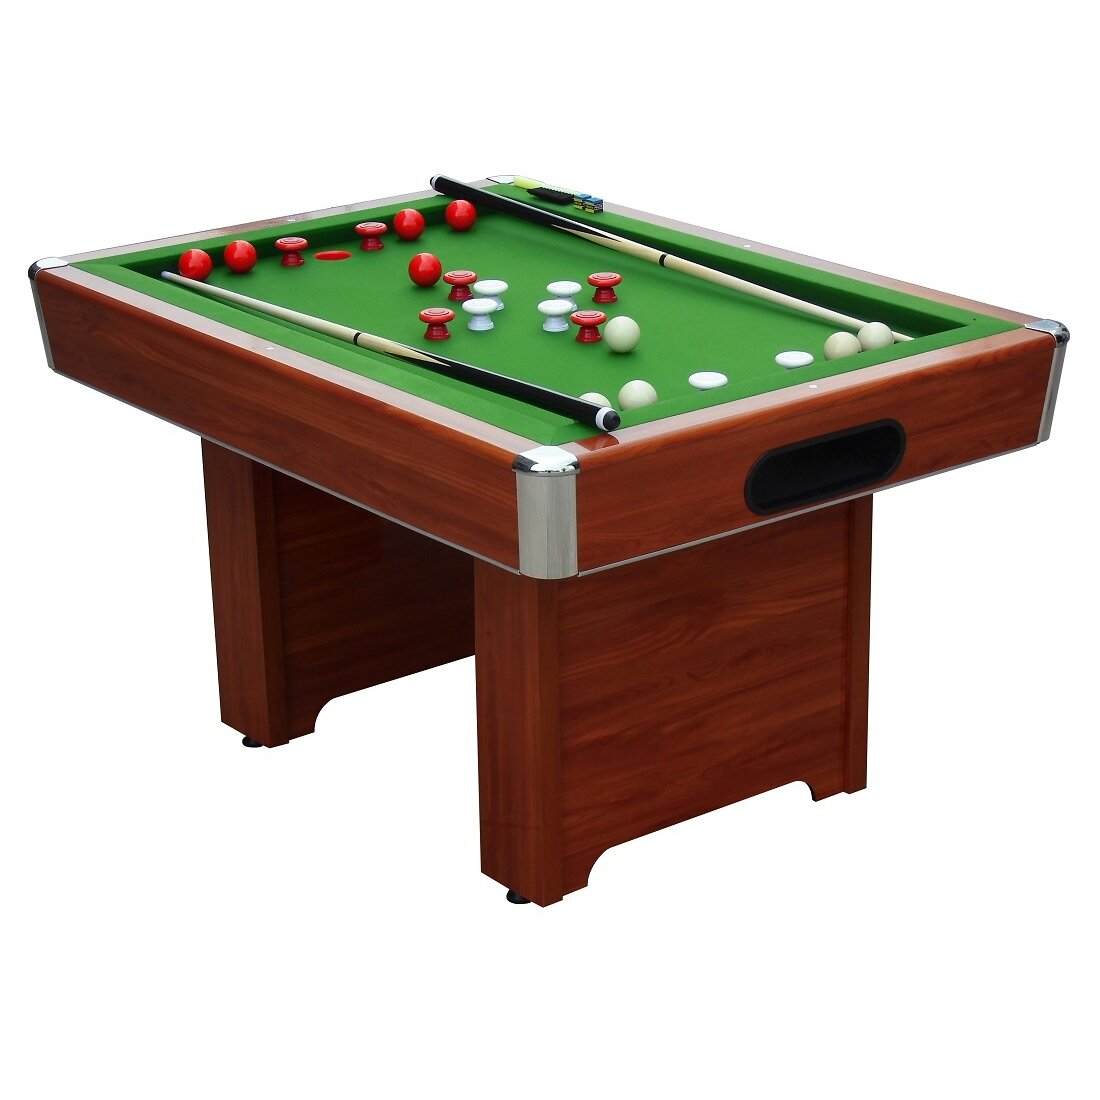 Playcraft hartford 3 4 slate bed bumper 4 39 pool table for 1 inch slate pool table